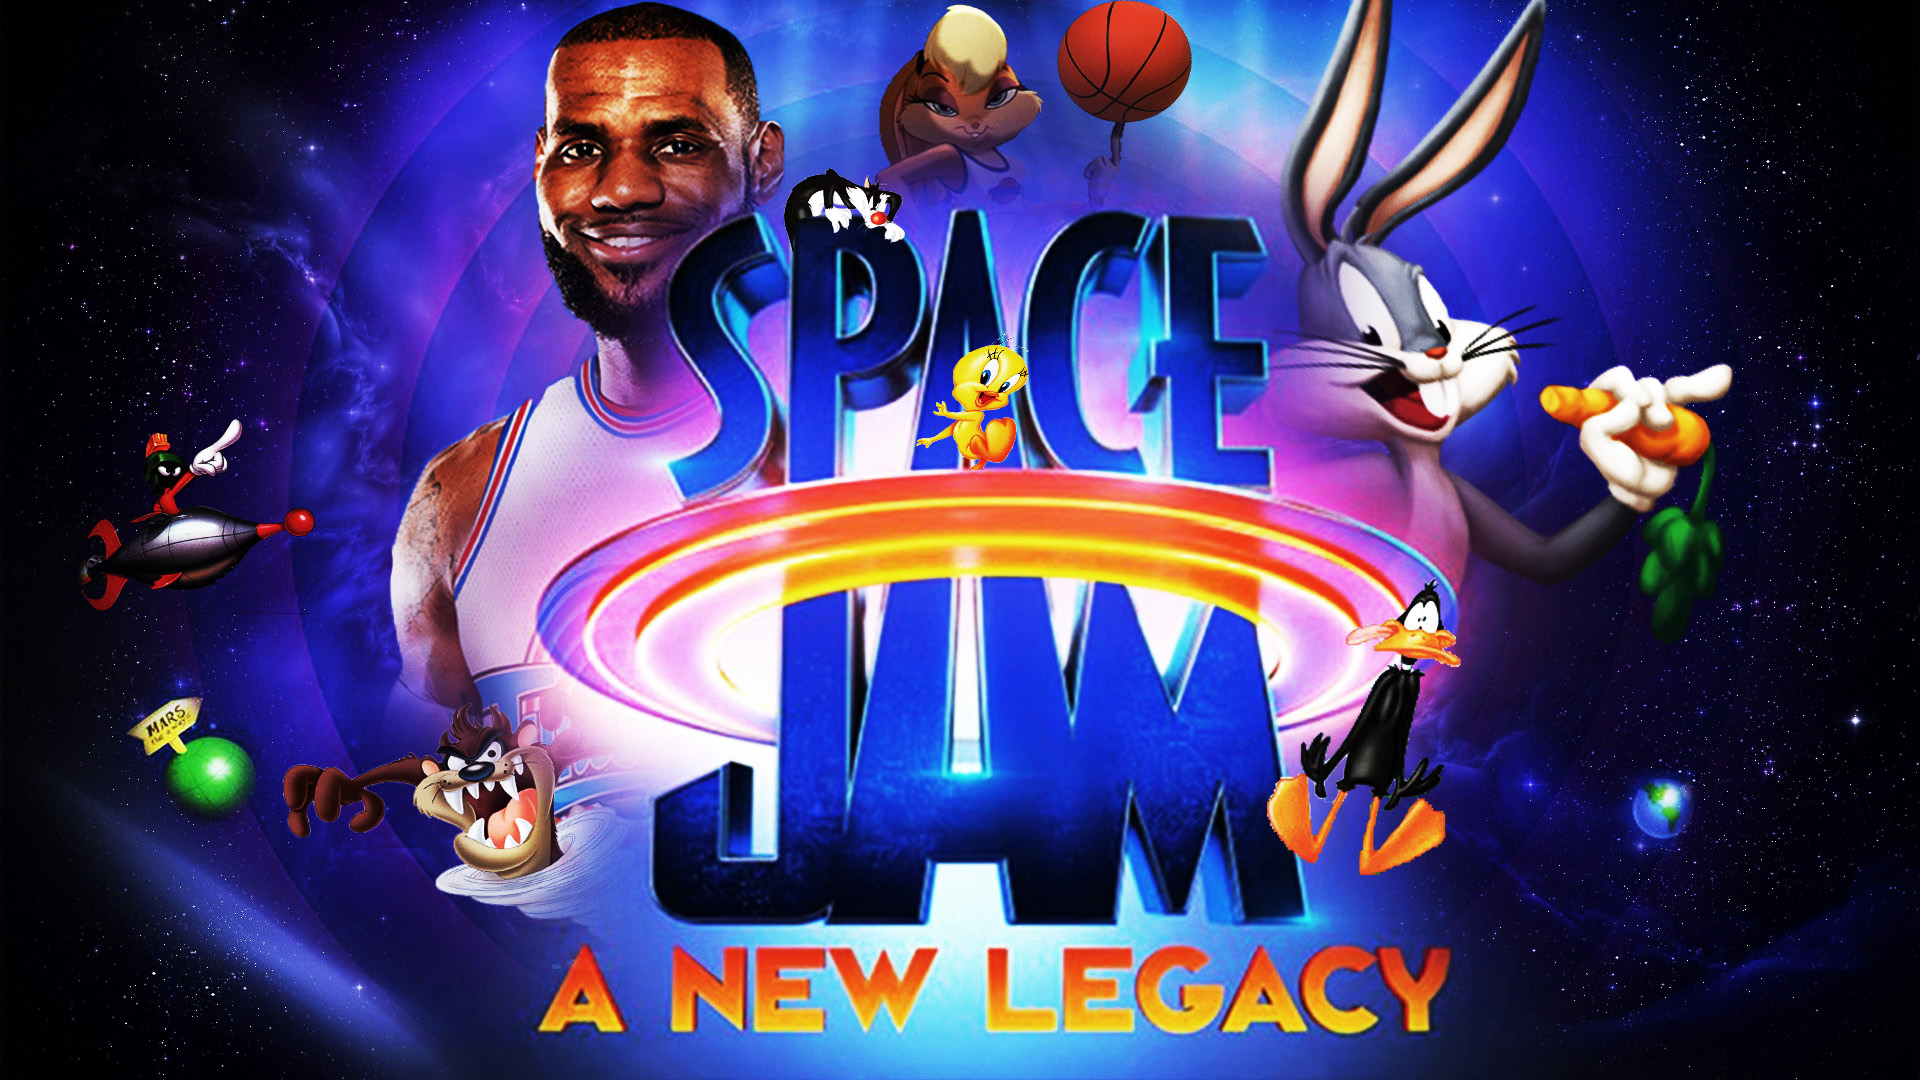 Space Jam: A New Legacy: Release Date, Cast, Plot Details - The Teal Mango